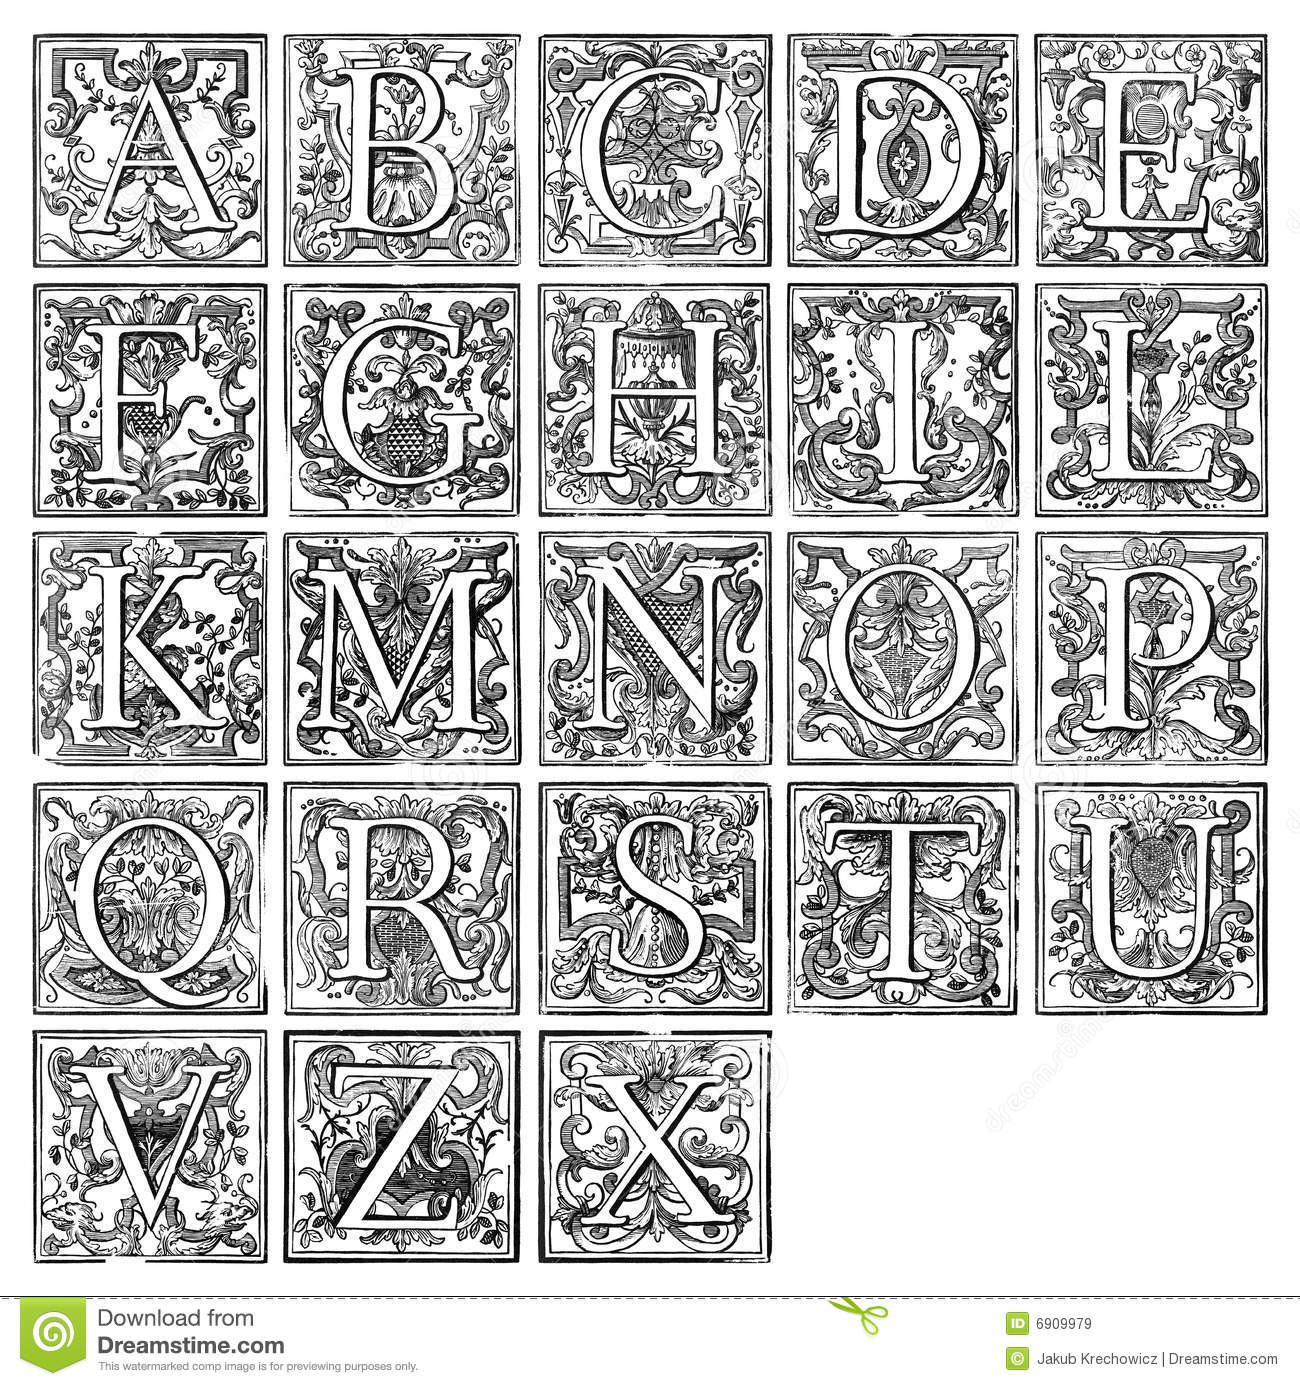 illuminated manuscript alphabet coloring pages 28 images of medieval illuminated letter template neo illuminated manuscript pages coloring alphabet